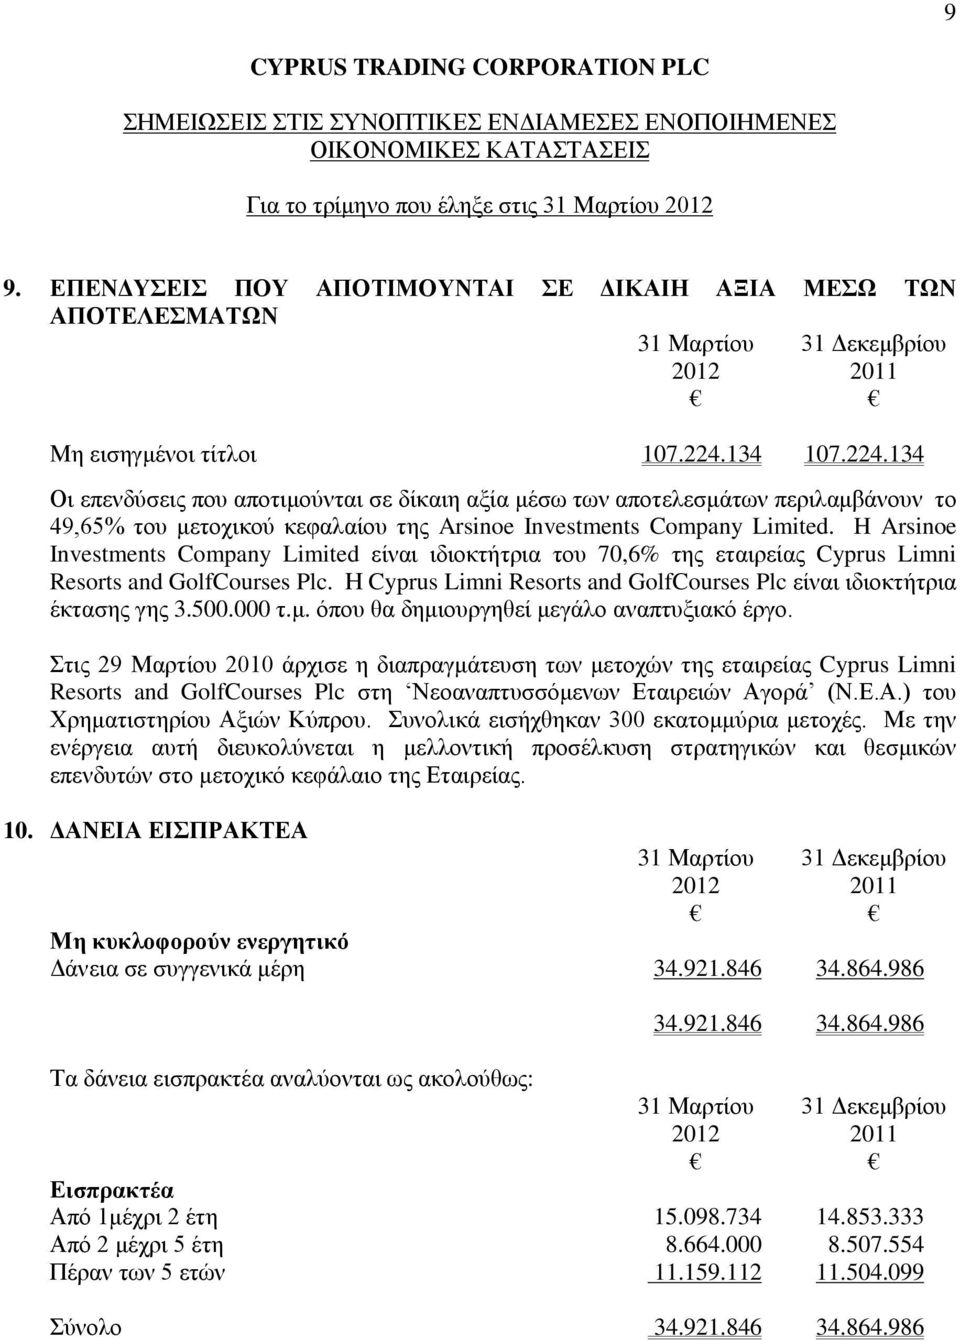 H Arsinoe Investments Company Limited είναι ιδιοκτήτρια του 70,6% της εταιρείας Cyprus Limni Resorts and GolfCourses Plc. Η Cyprus Limni Resorts and GolfCourses Plc είναι ιδιοκτήτρια έκτασης γης 3.